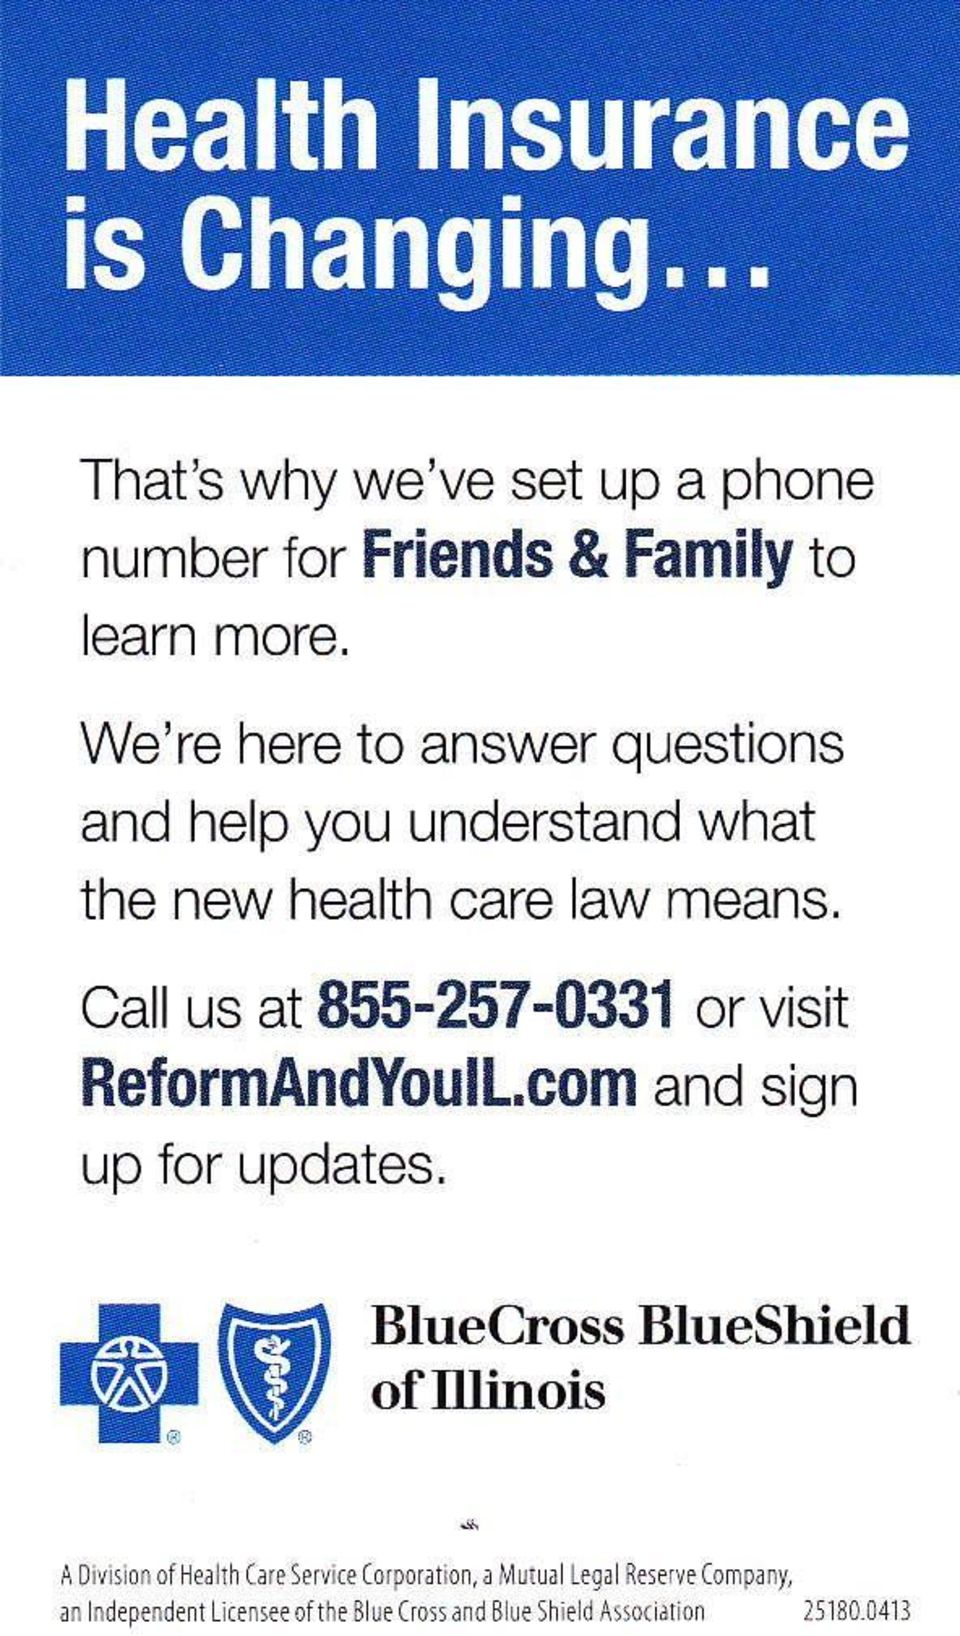 Call us at 855-257-03i!1 or visit ReformAndYoull.com and sign up for updates.